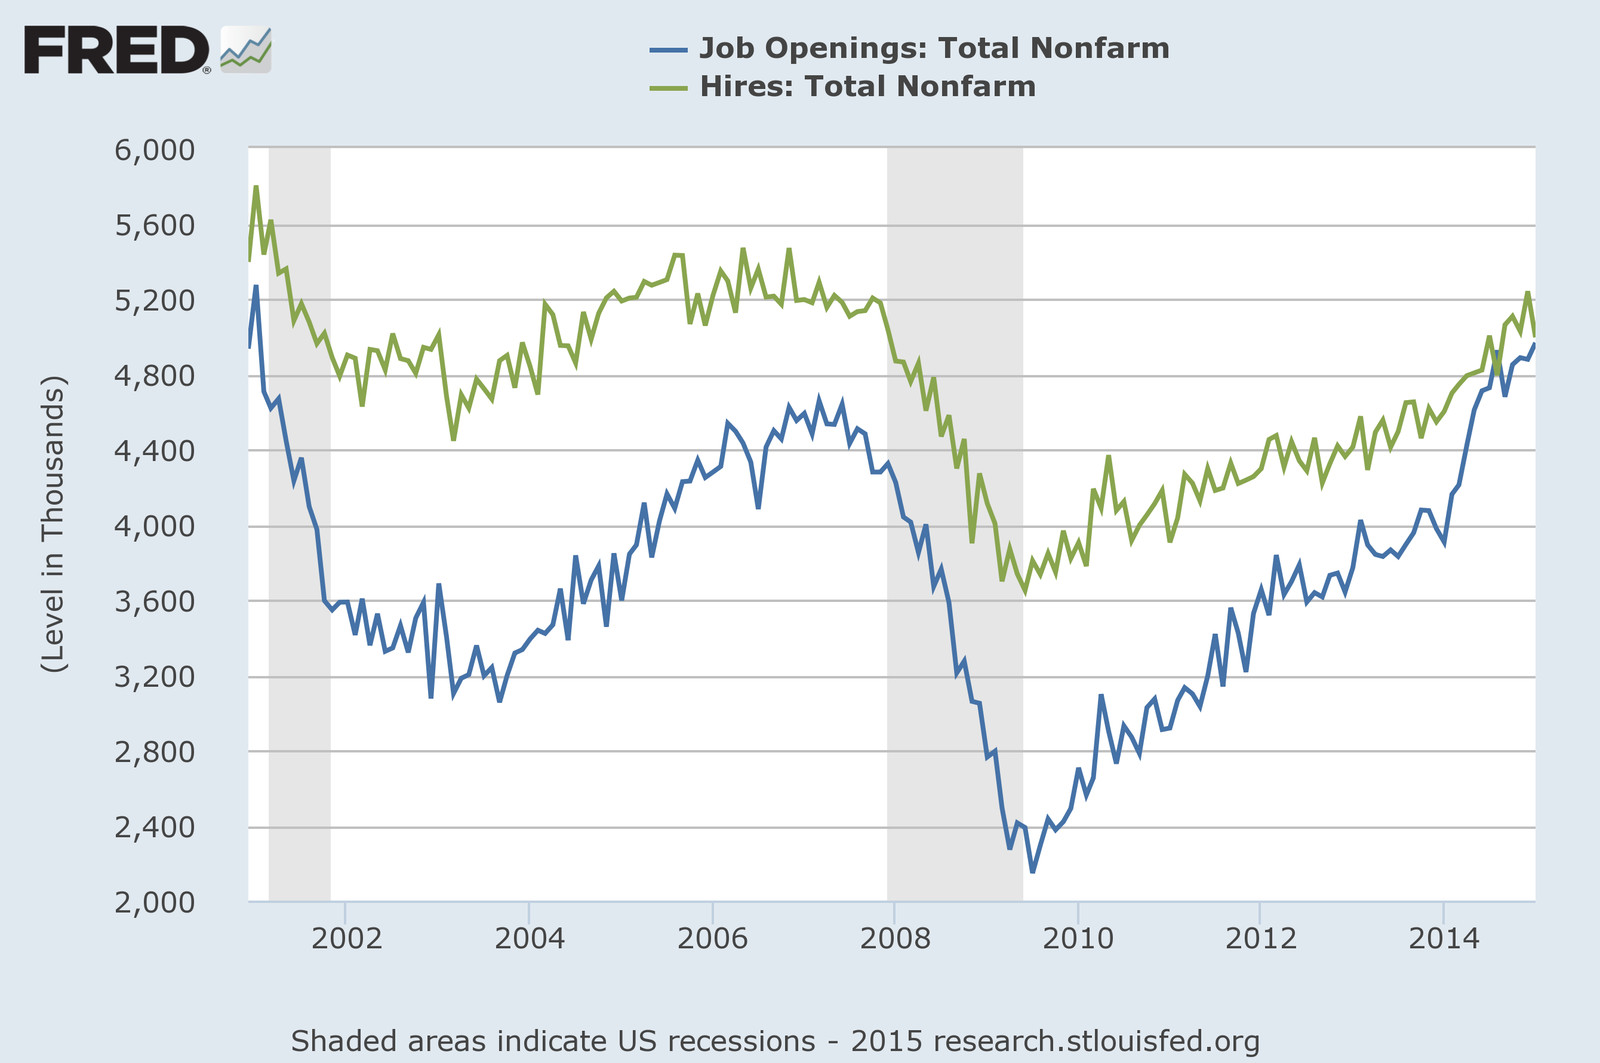 FRED hires and job openings